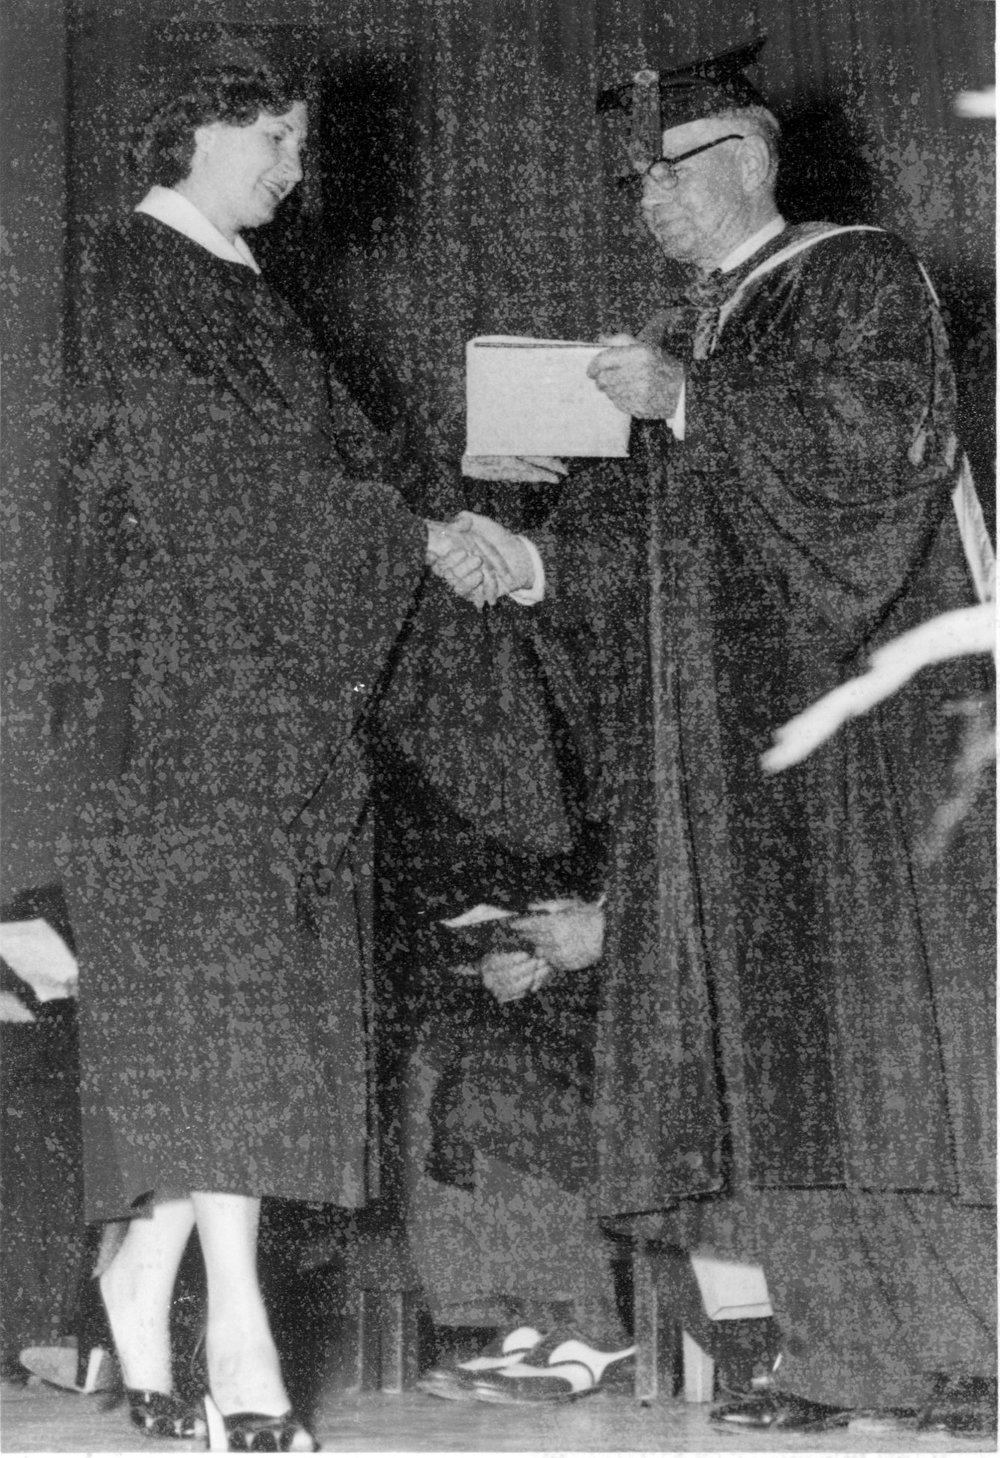 ^ In May 1953, Mildred received her bachelor's degree from Teachers College (now known as University of Central Arkansas) in Conway.